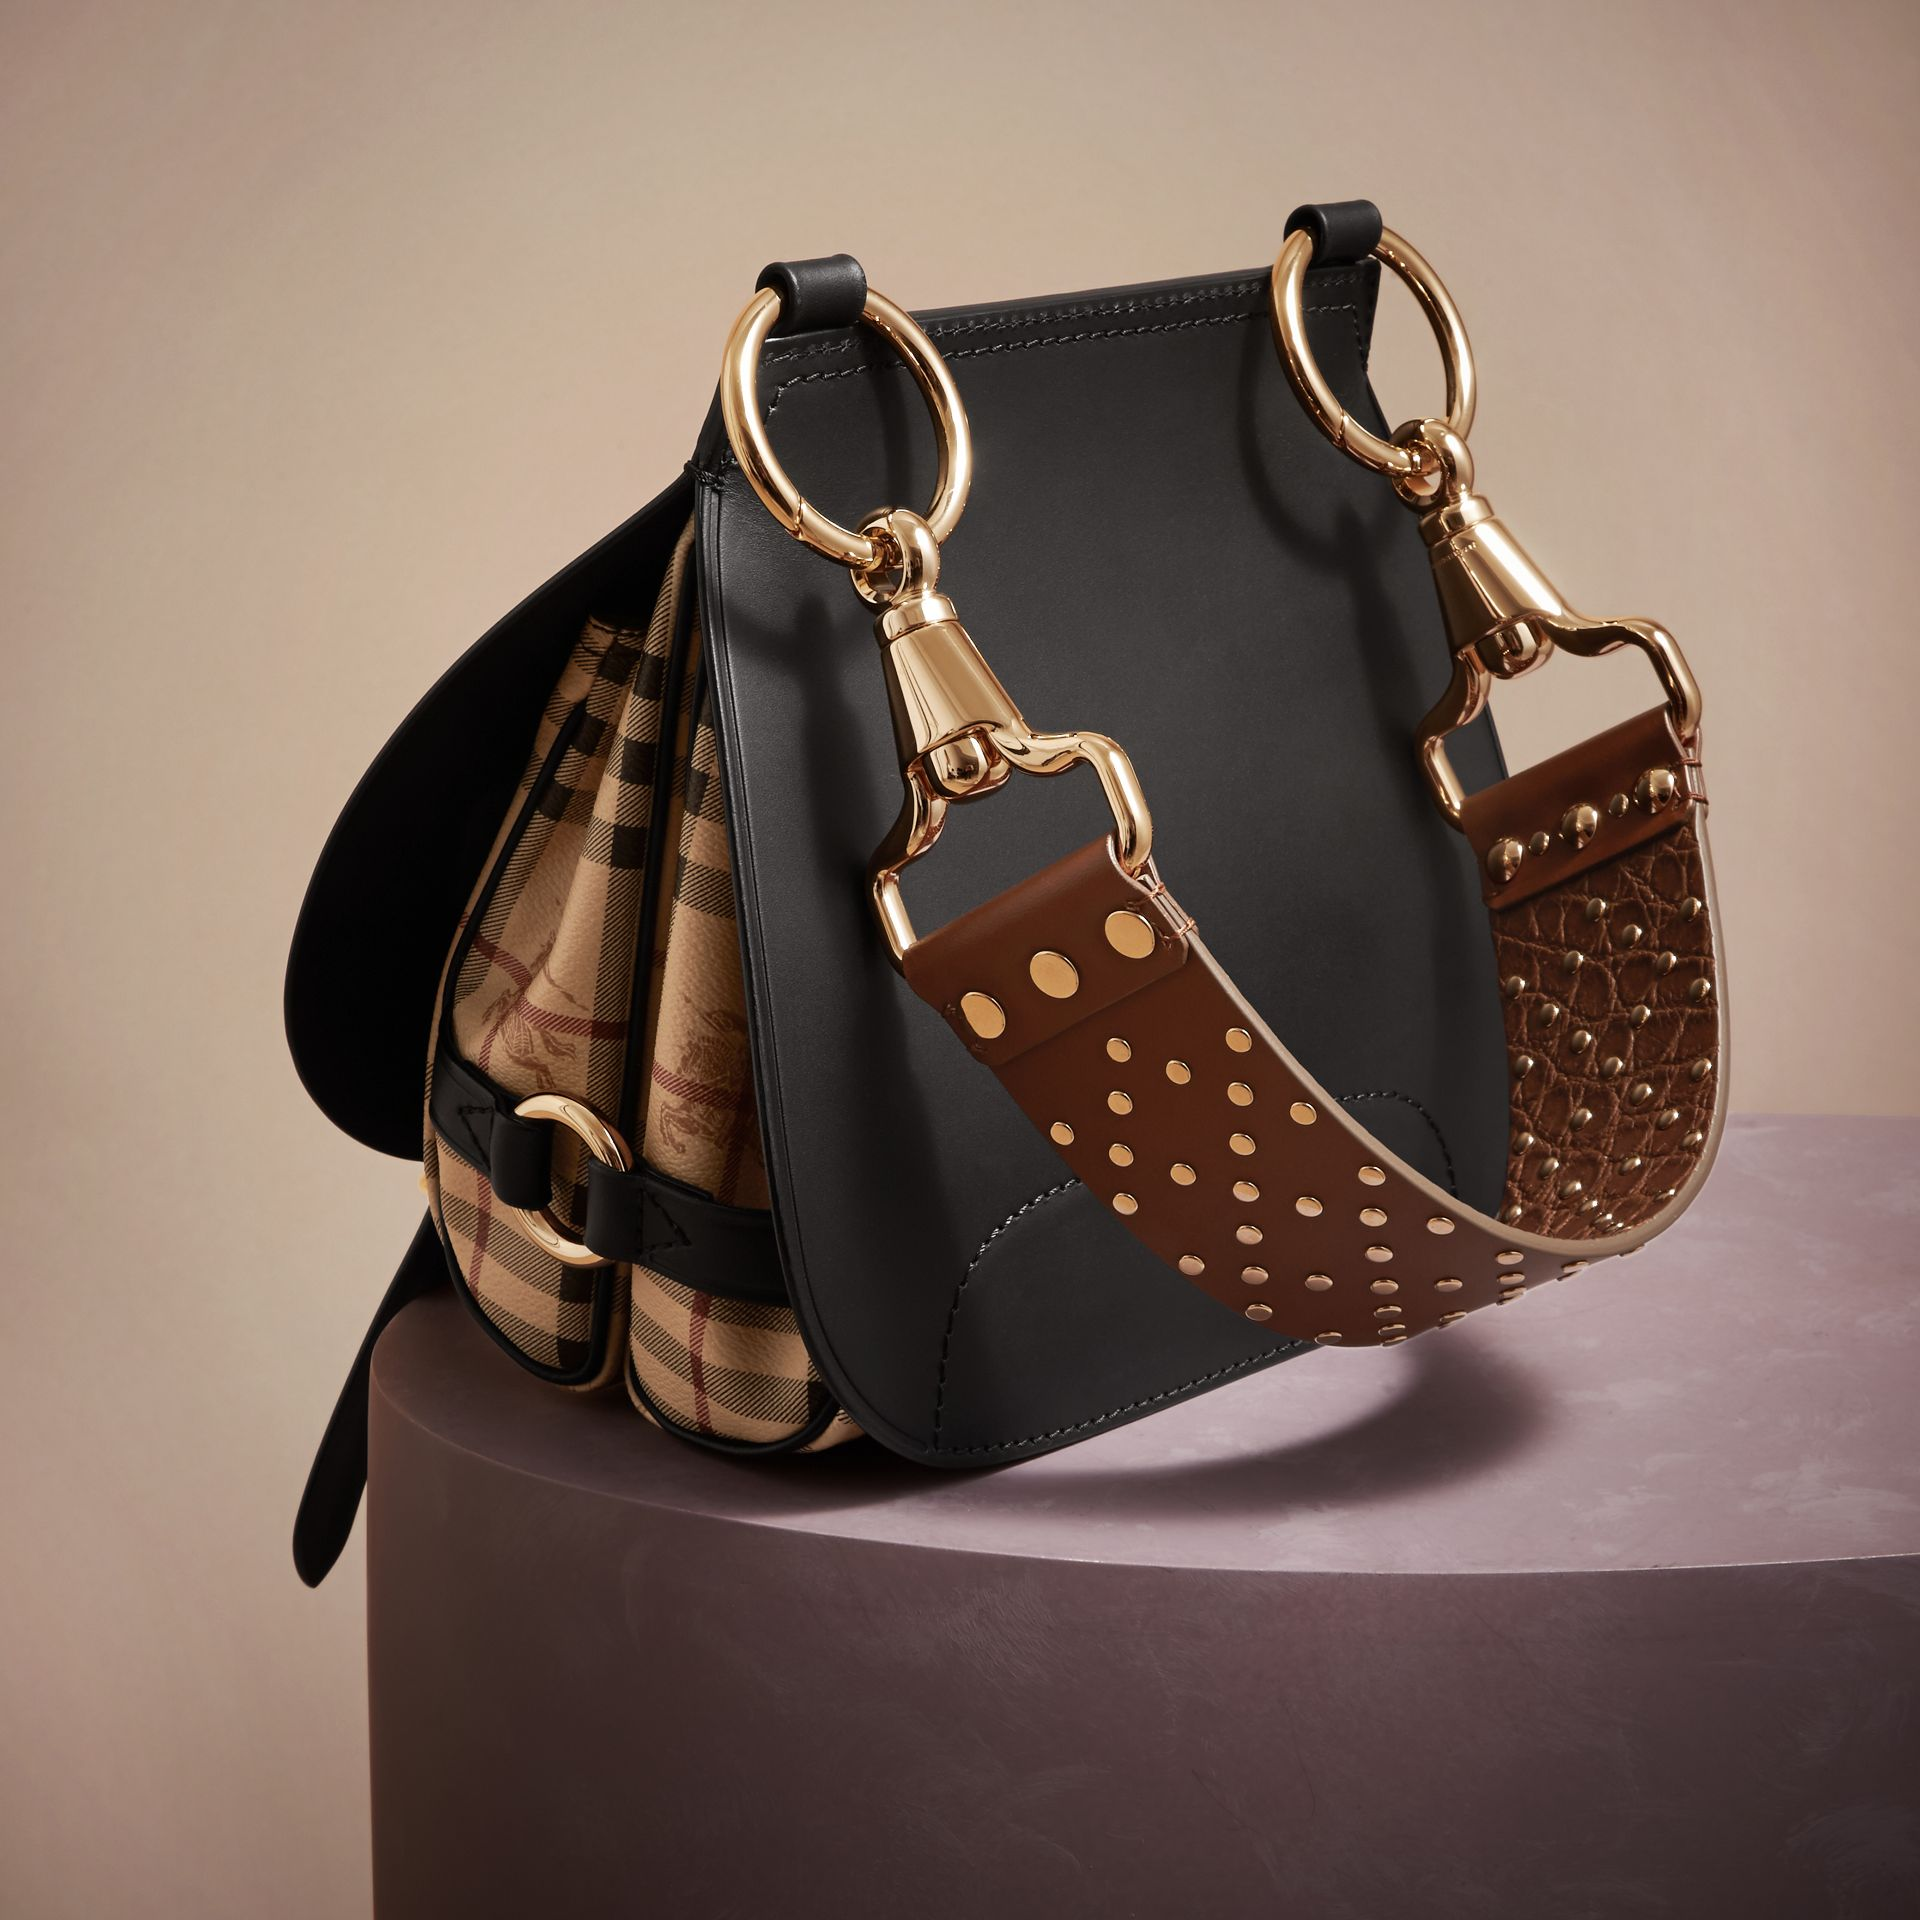 Borsa The Bridle in pelle, motivo Haymarket check e alligatore (Nero) - Donna | Burberry - immagine della galleria 5